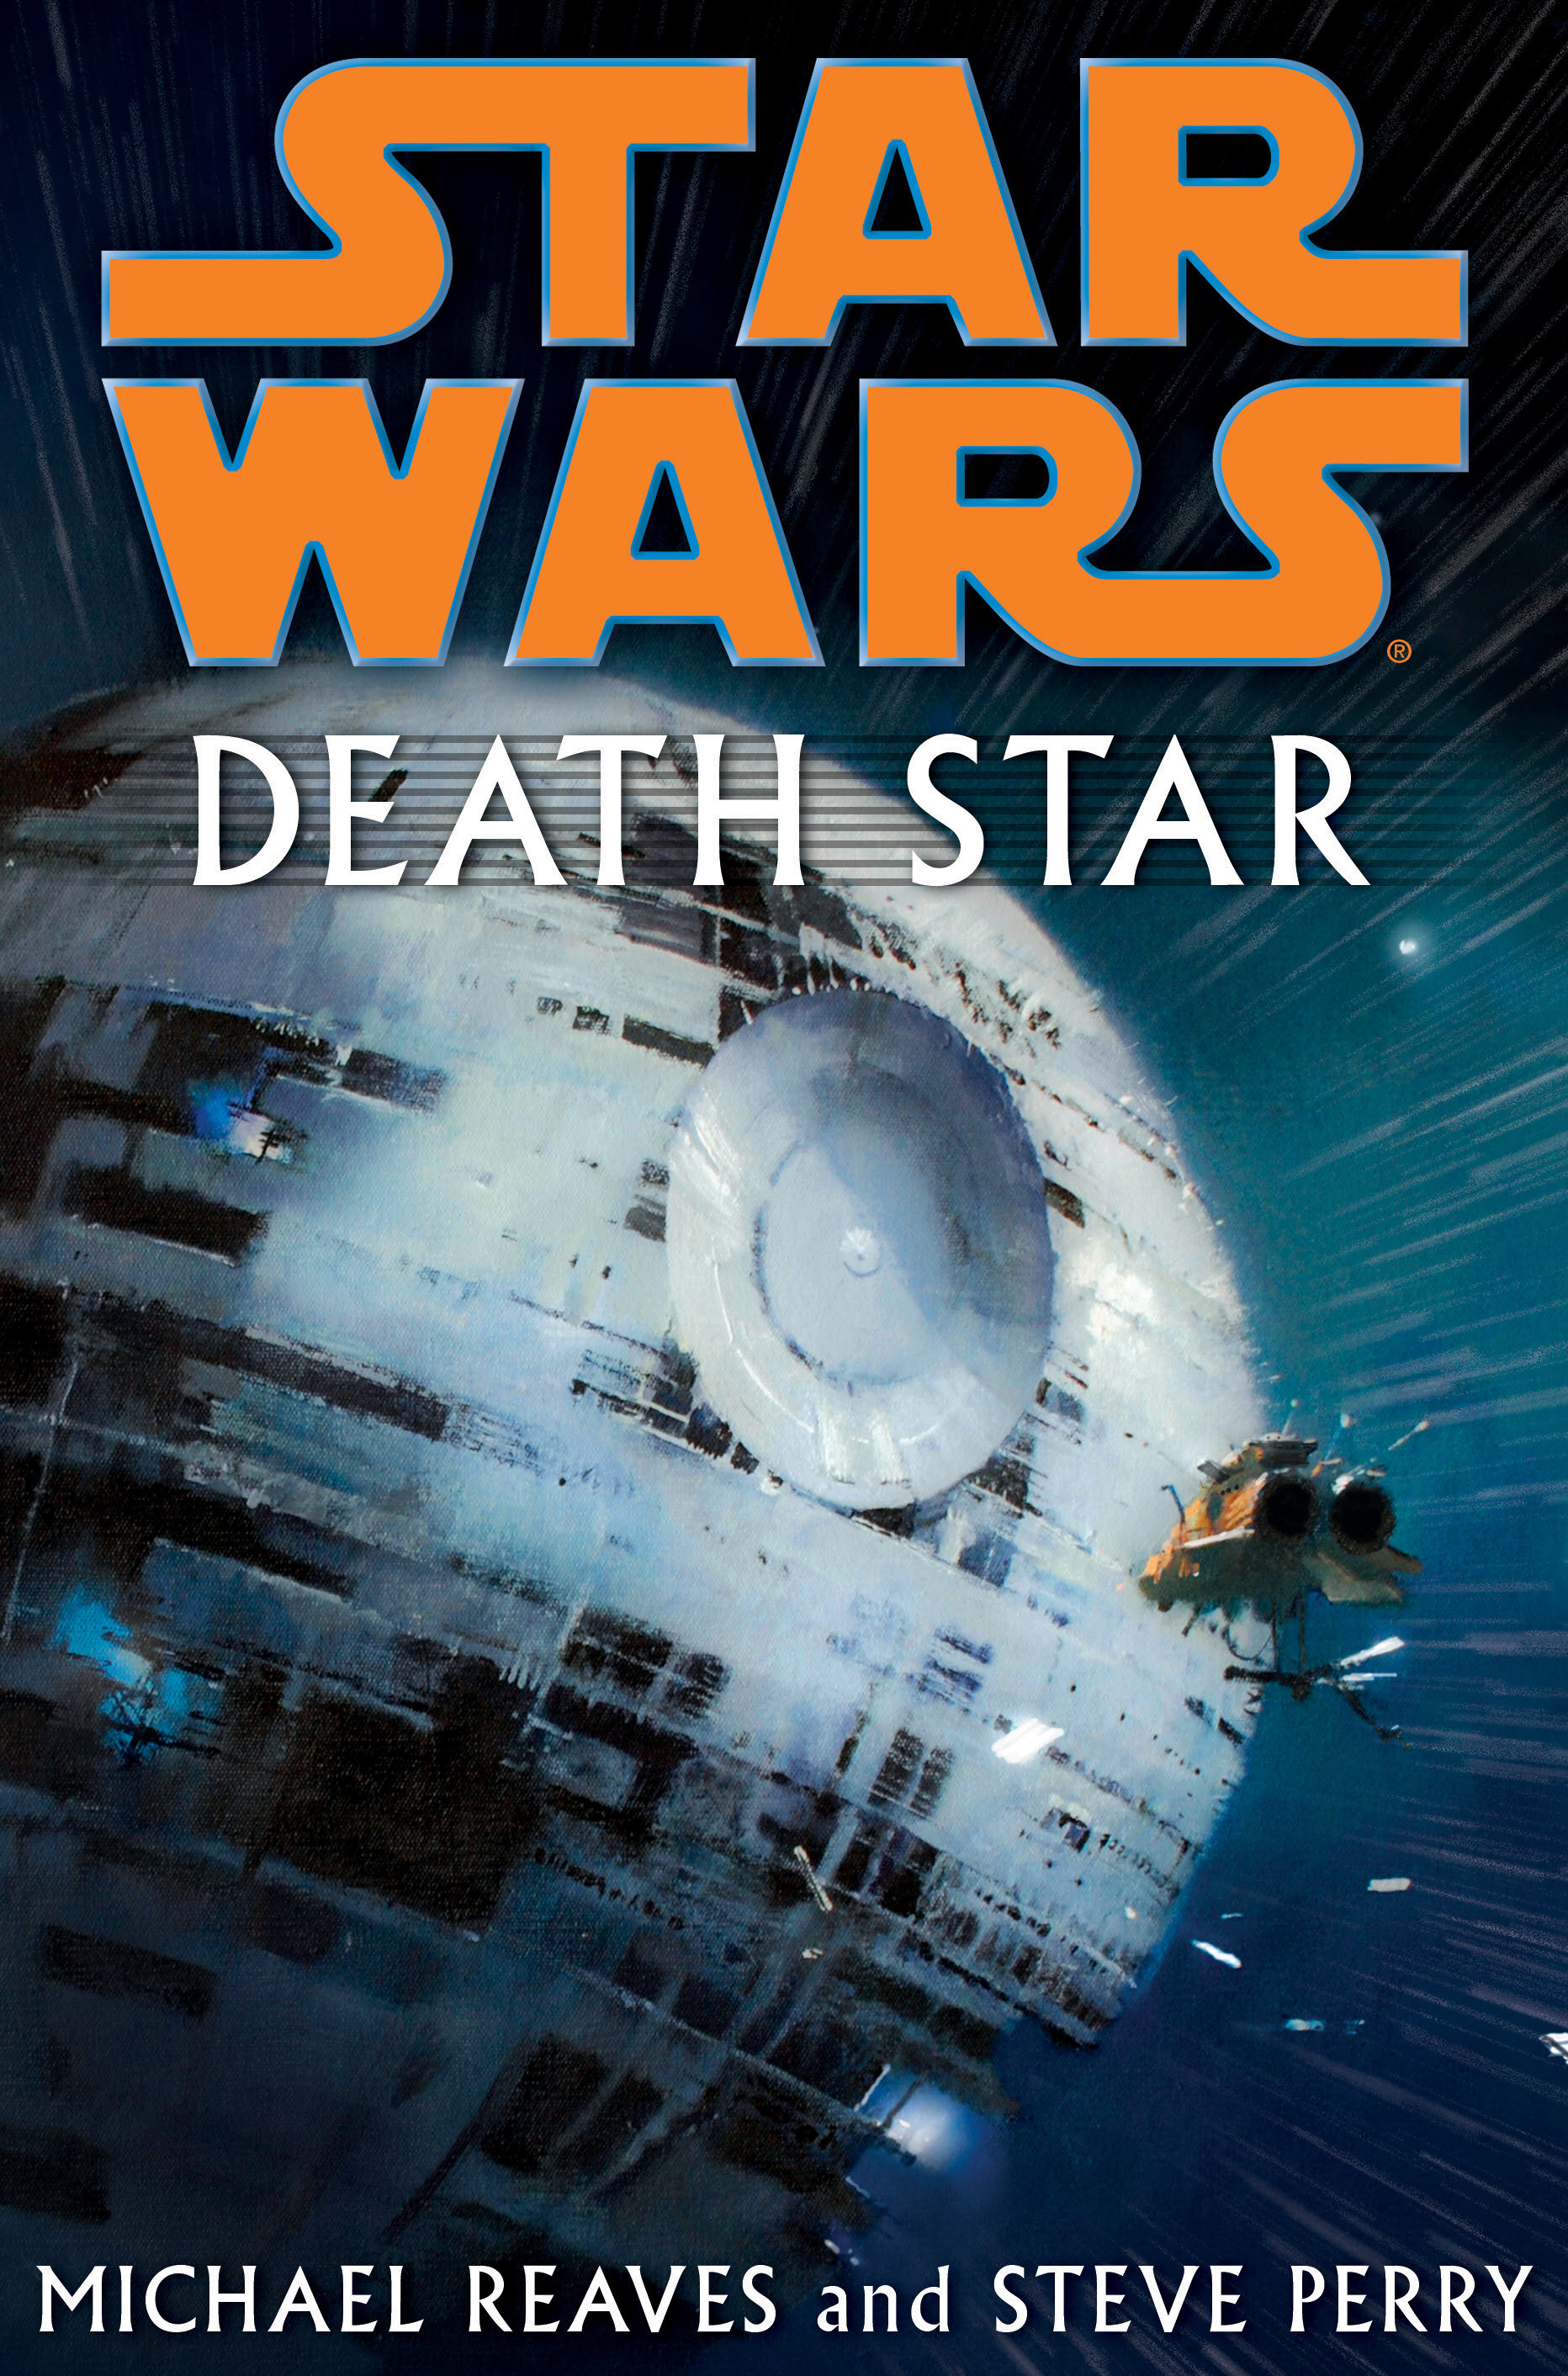 White House to Respond to Death Star Petition